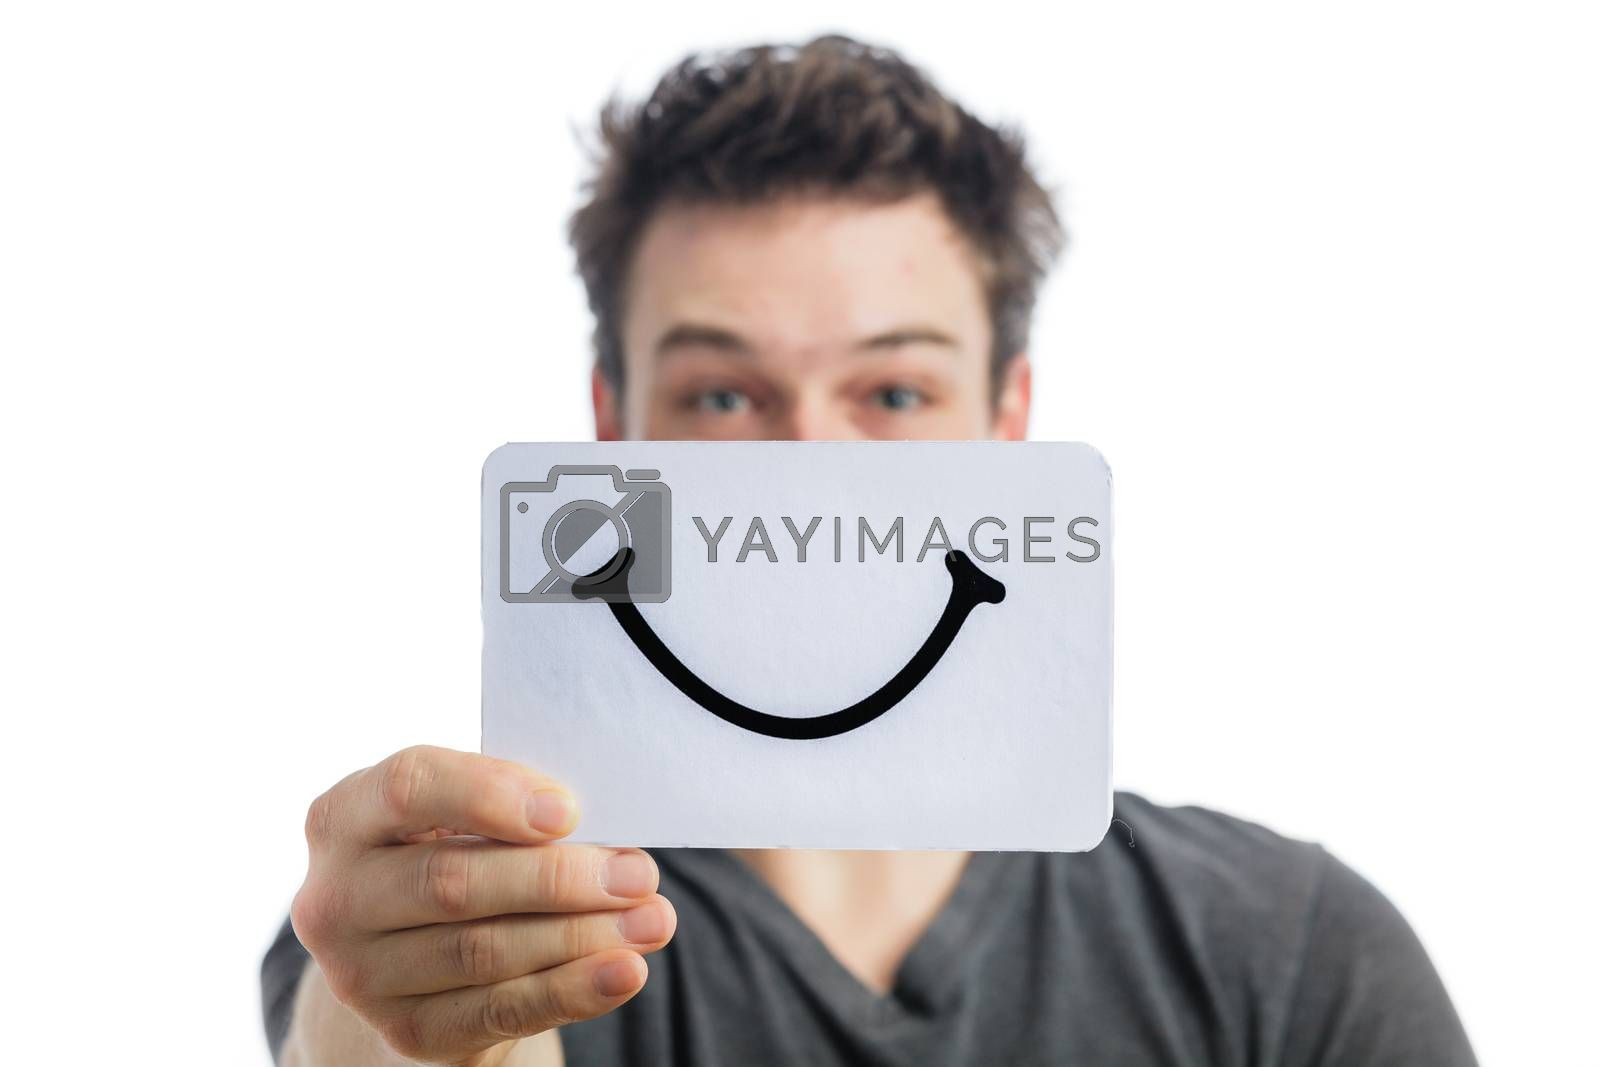 Happy Portrait of a Man Holding a Smiling Mood Board Isolated on White Background